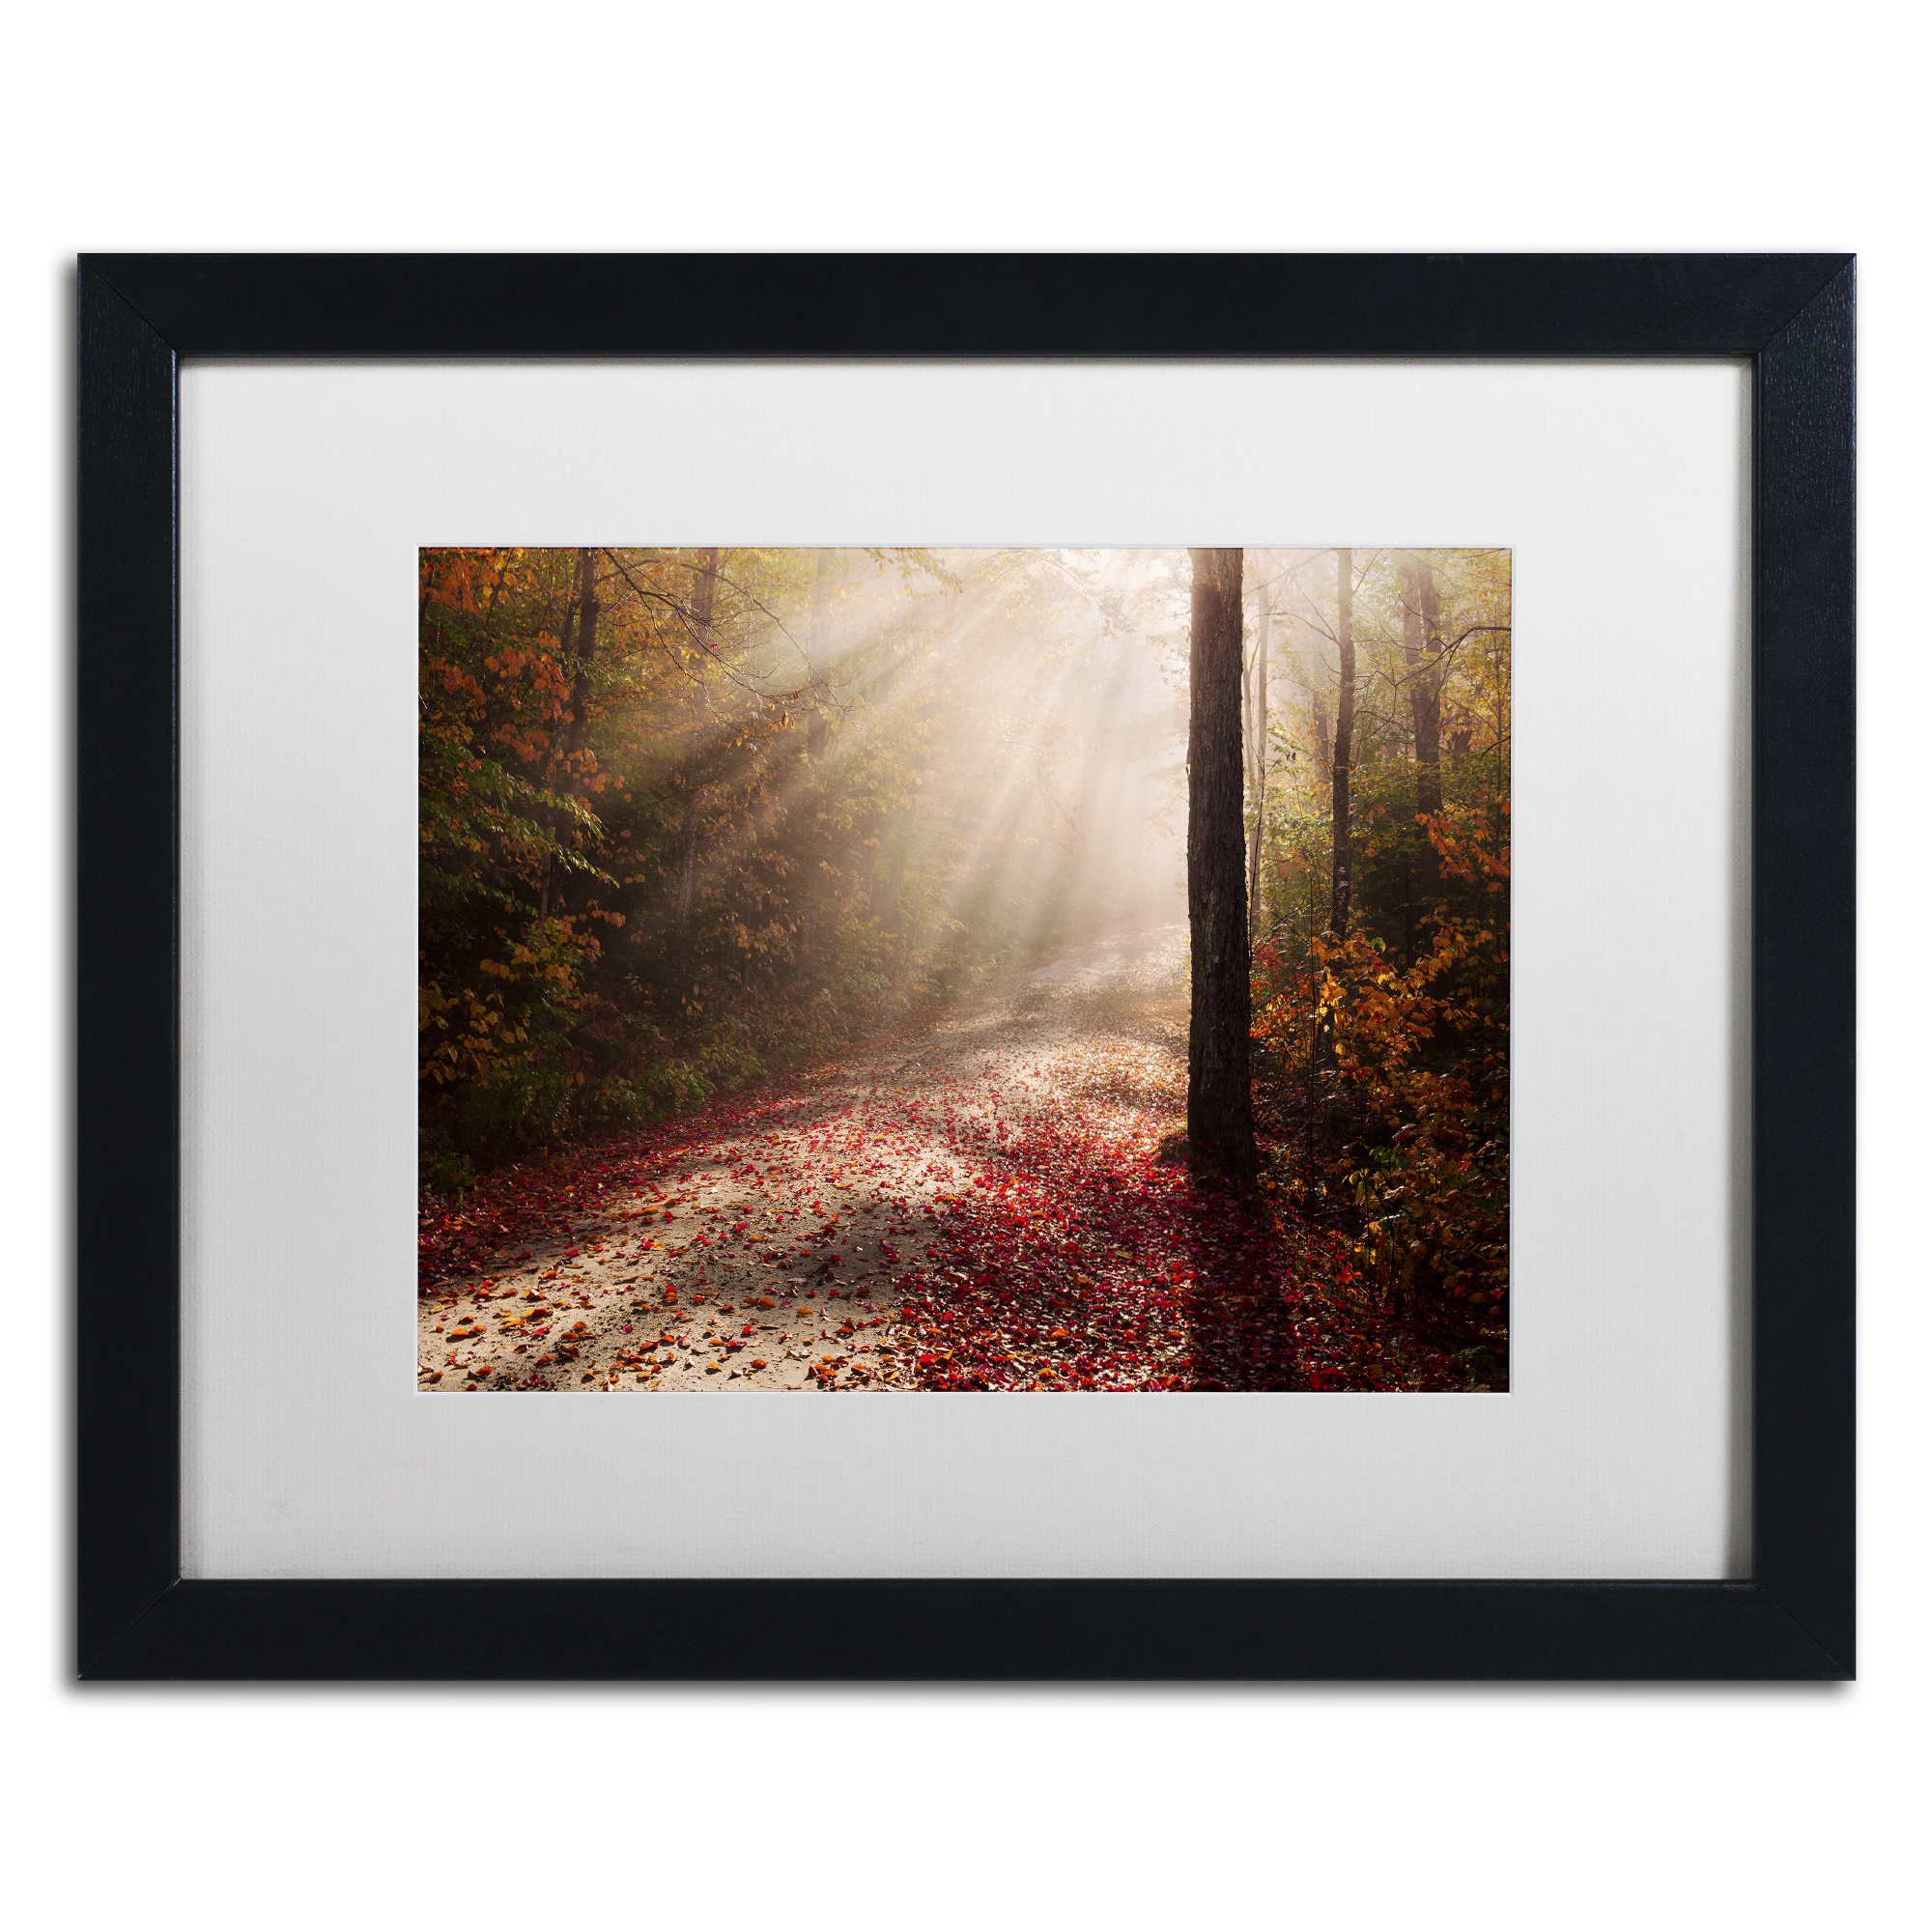 Michael Blanchette Photography 'Light in the Forest' Black Wooden Framed Art 18 x 22 Inches